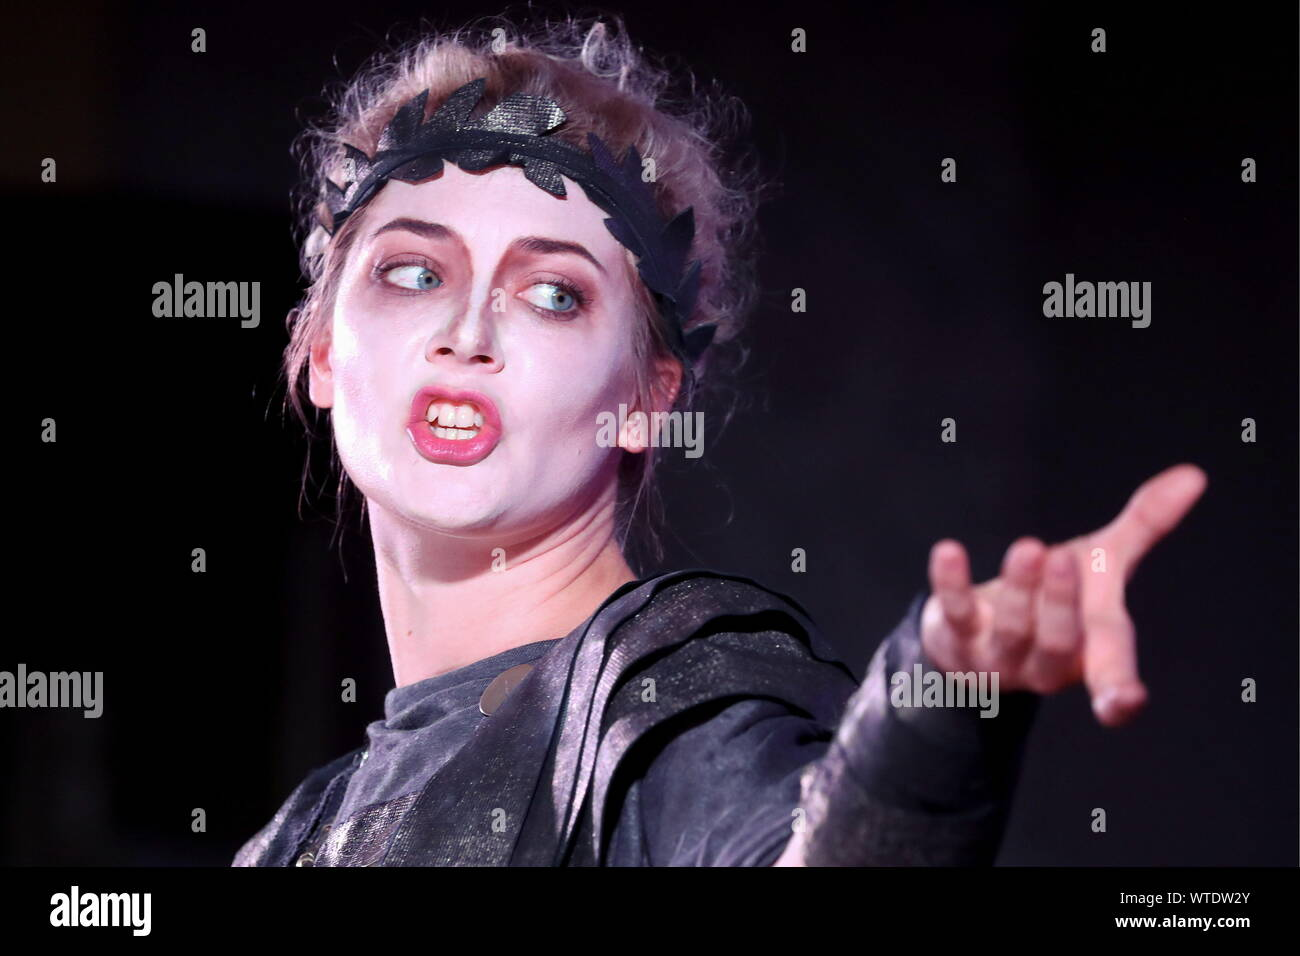 Moscow, Russia. 11th Sep, 2019. MOSCOW, RUSSIA - SEPTEMBER 11, 2019: Singer Yelizaveta Sveshnikova as Cephalus performs in a scene from the opera production of Cephalus and Procris staged at the Patriarch's Palace of the Moscow Kremlin as part of the 2nd Music Festival Tsars and Muses - Opera at the Russian Court. Sergei Karpukhin/TASS Credit: ITAR-TASS News Agency/Alamy Live News Stock Photo